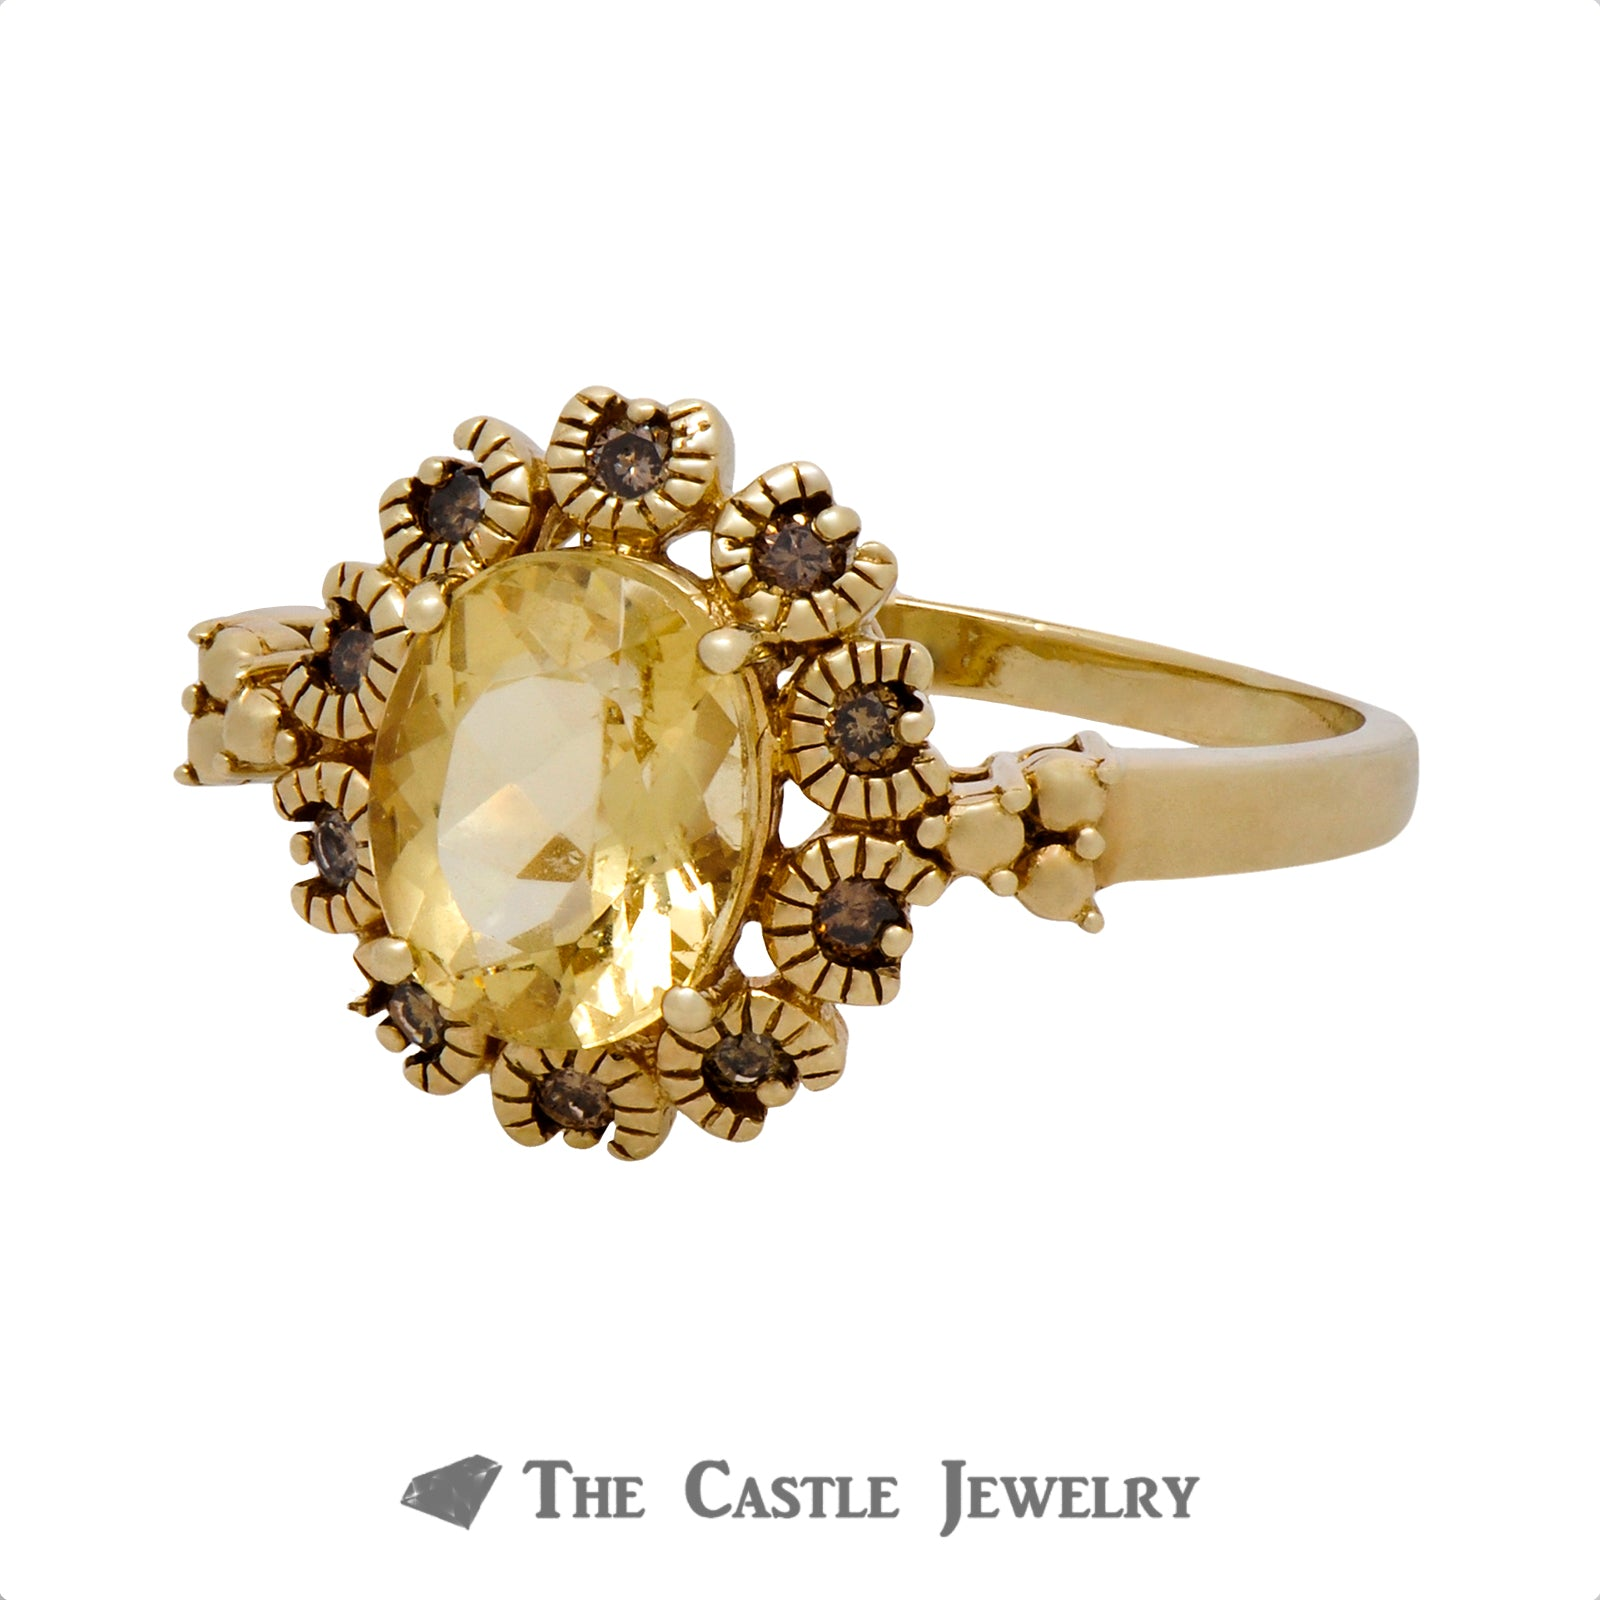 Oval Citrine Ring with .25cttw Illusion Diamonds in Beaded Bezel Crafted in 10K Yellow Gold